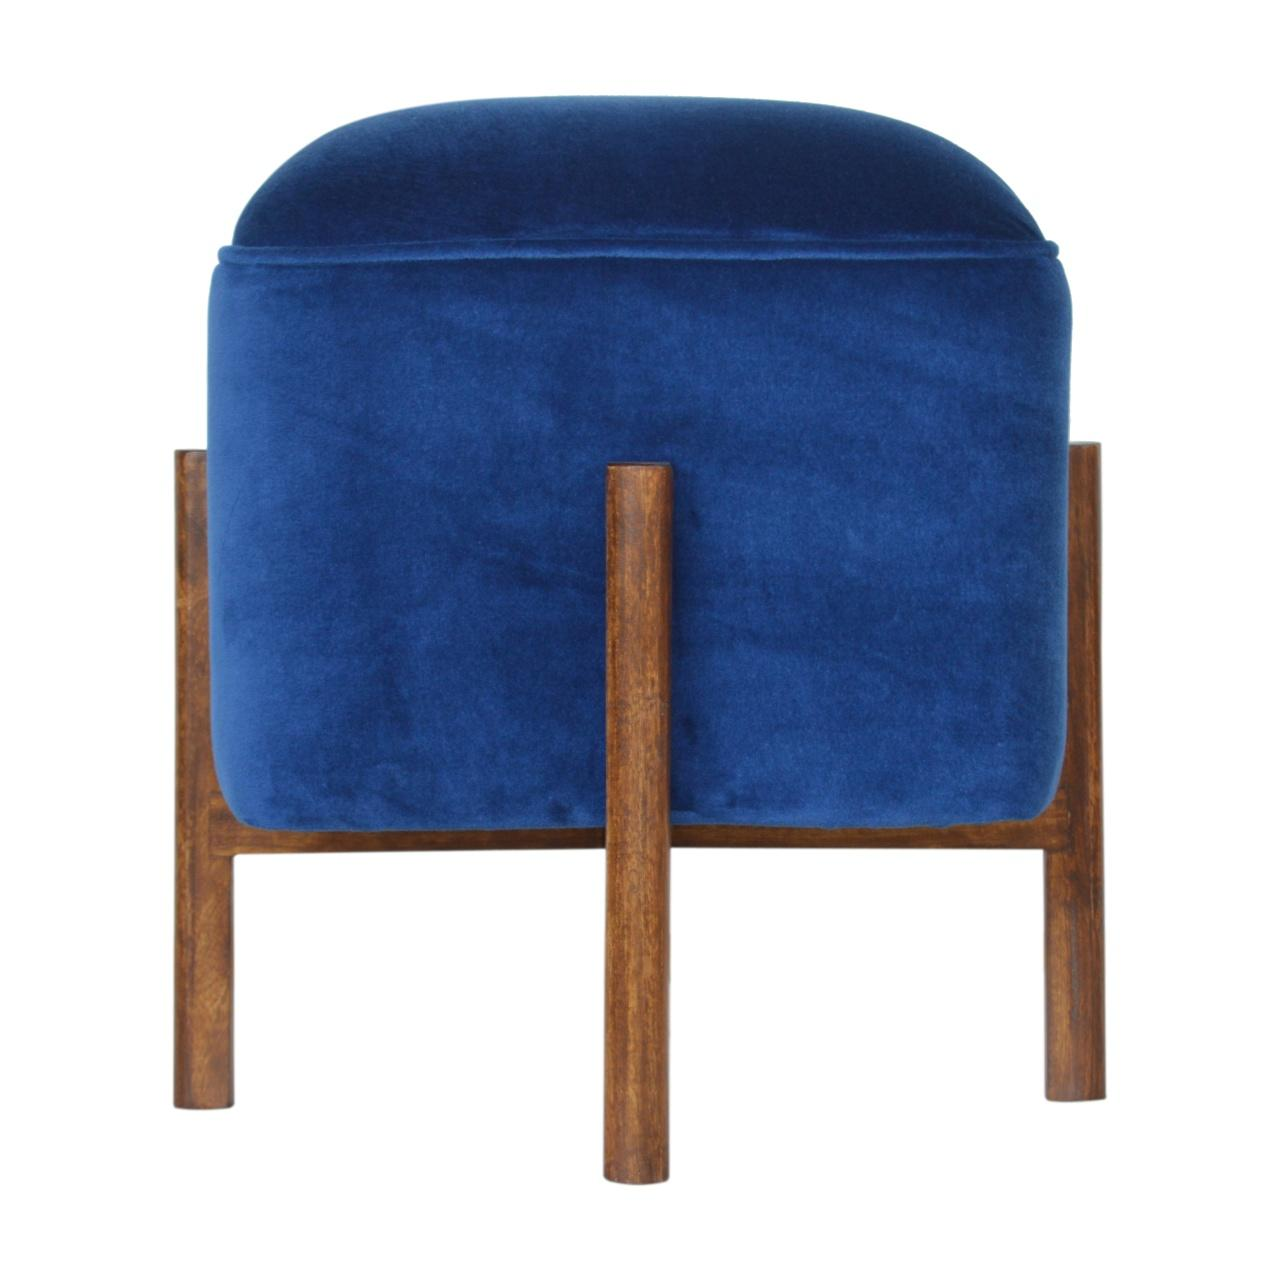 Royal Blue Velvet Footstool with Solid Wood Legs